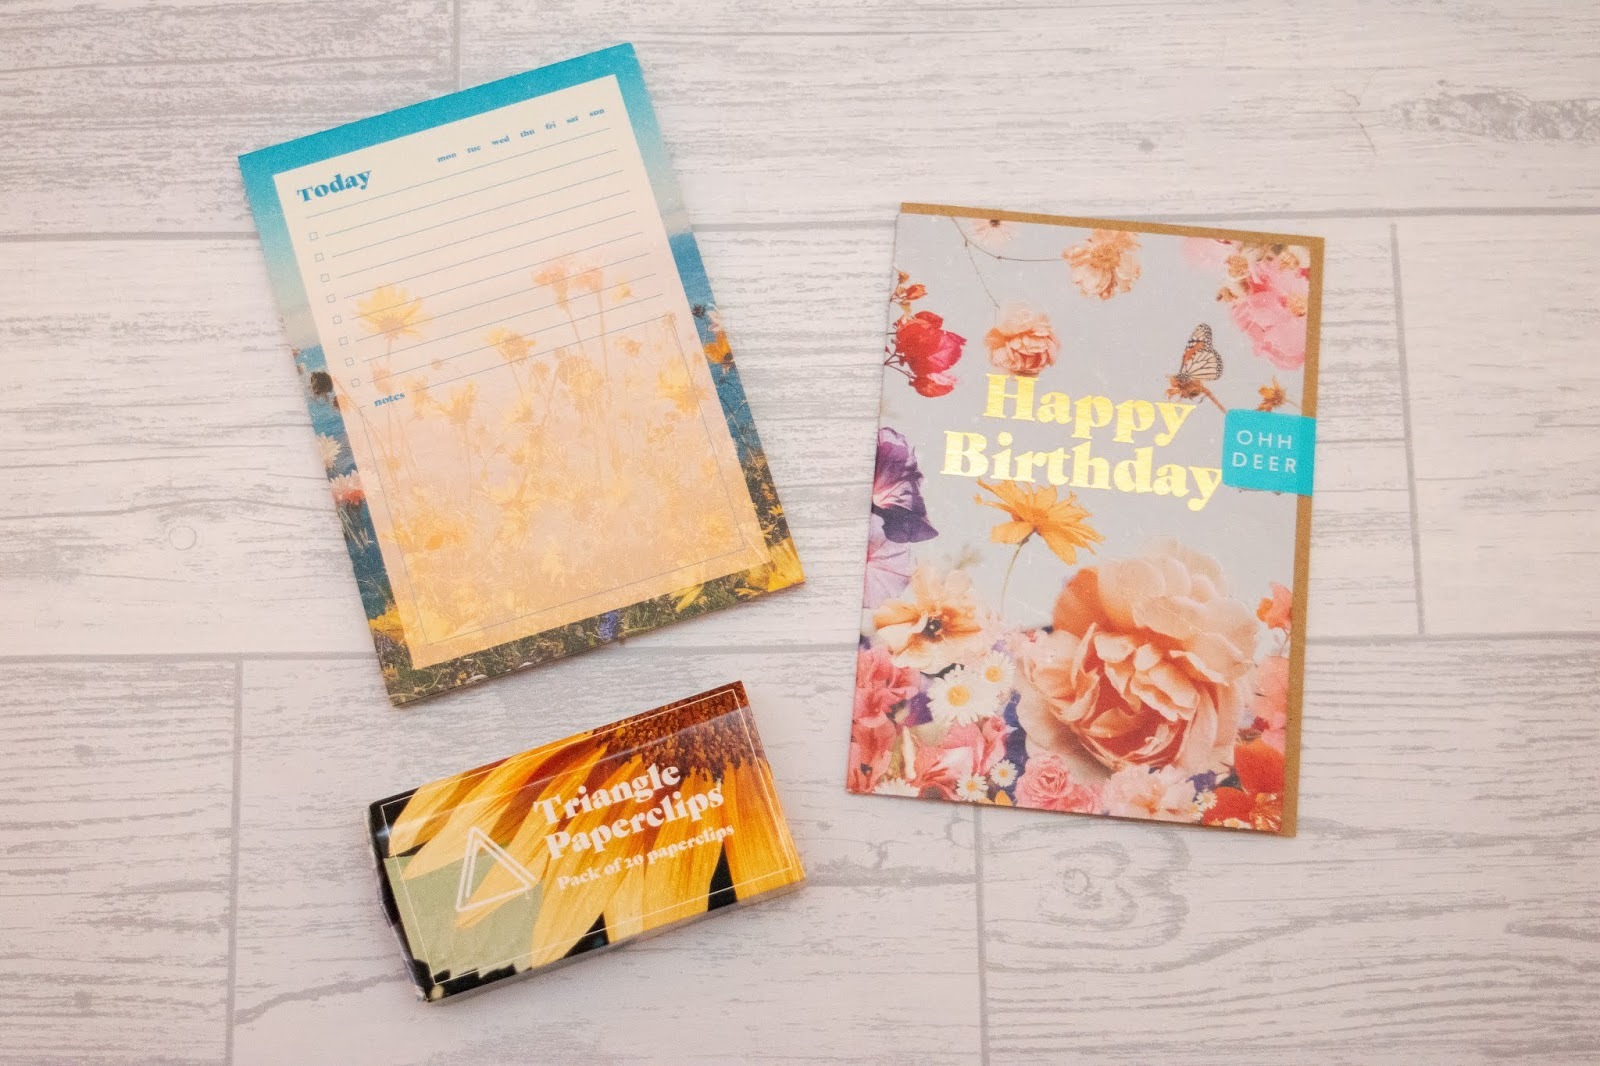 A list pad, box of paperclips and a birthday card